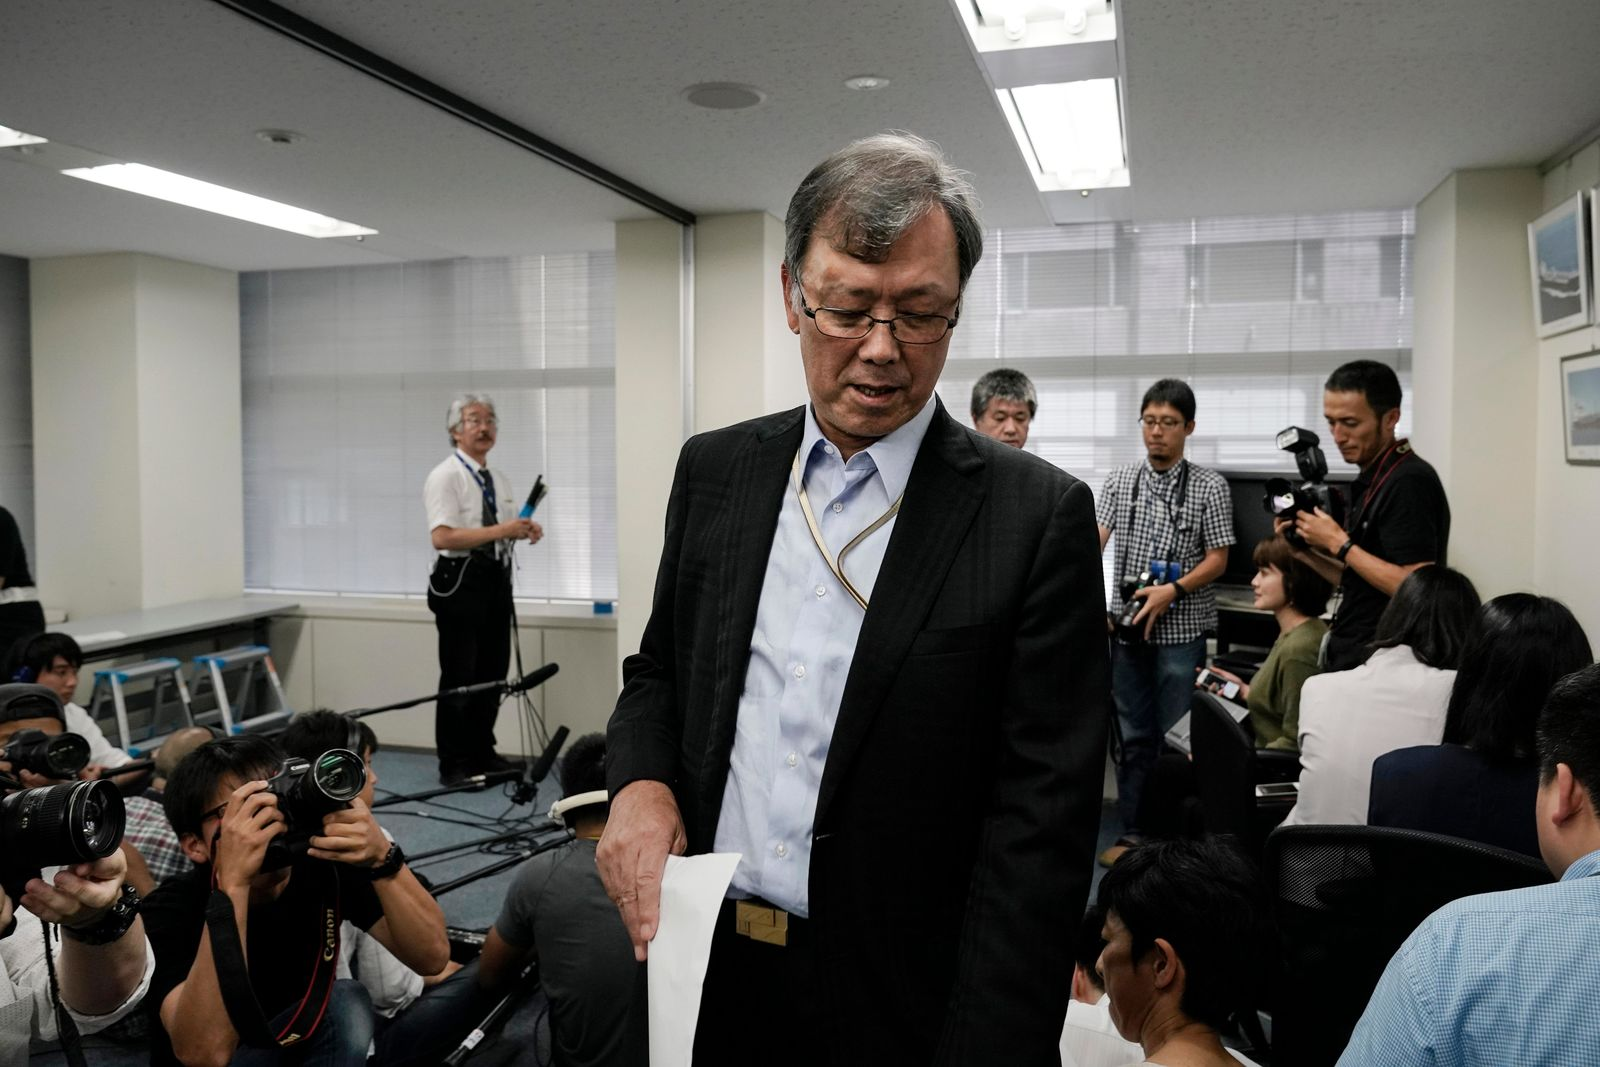 Yutaka Katada, president of Kokuka Sangyo Co., the Japanese company operating one of two oil tankers attacked near the Strait of Hormuz, leaves the room after speaking to reporters at a news conference Friday, June 14, 2019, in Tokyo. Iran rejects a U.S. accusation against Tehran over suspected attacks on two oil tankers near the strategic Strait of Hormuz. (AP Photo/Jae C. Hong)